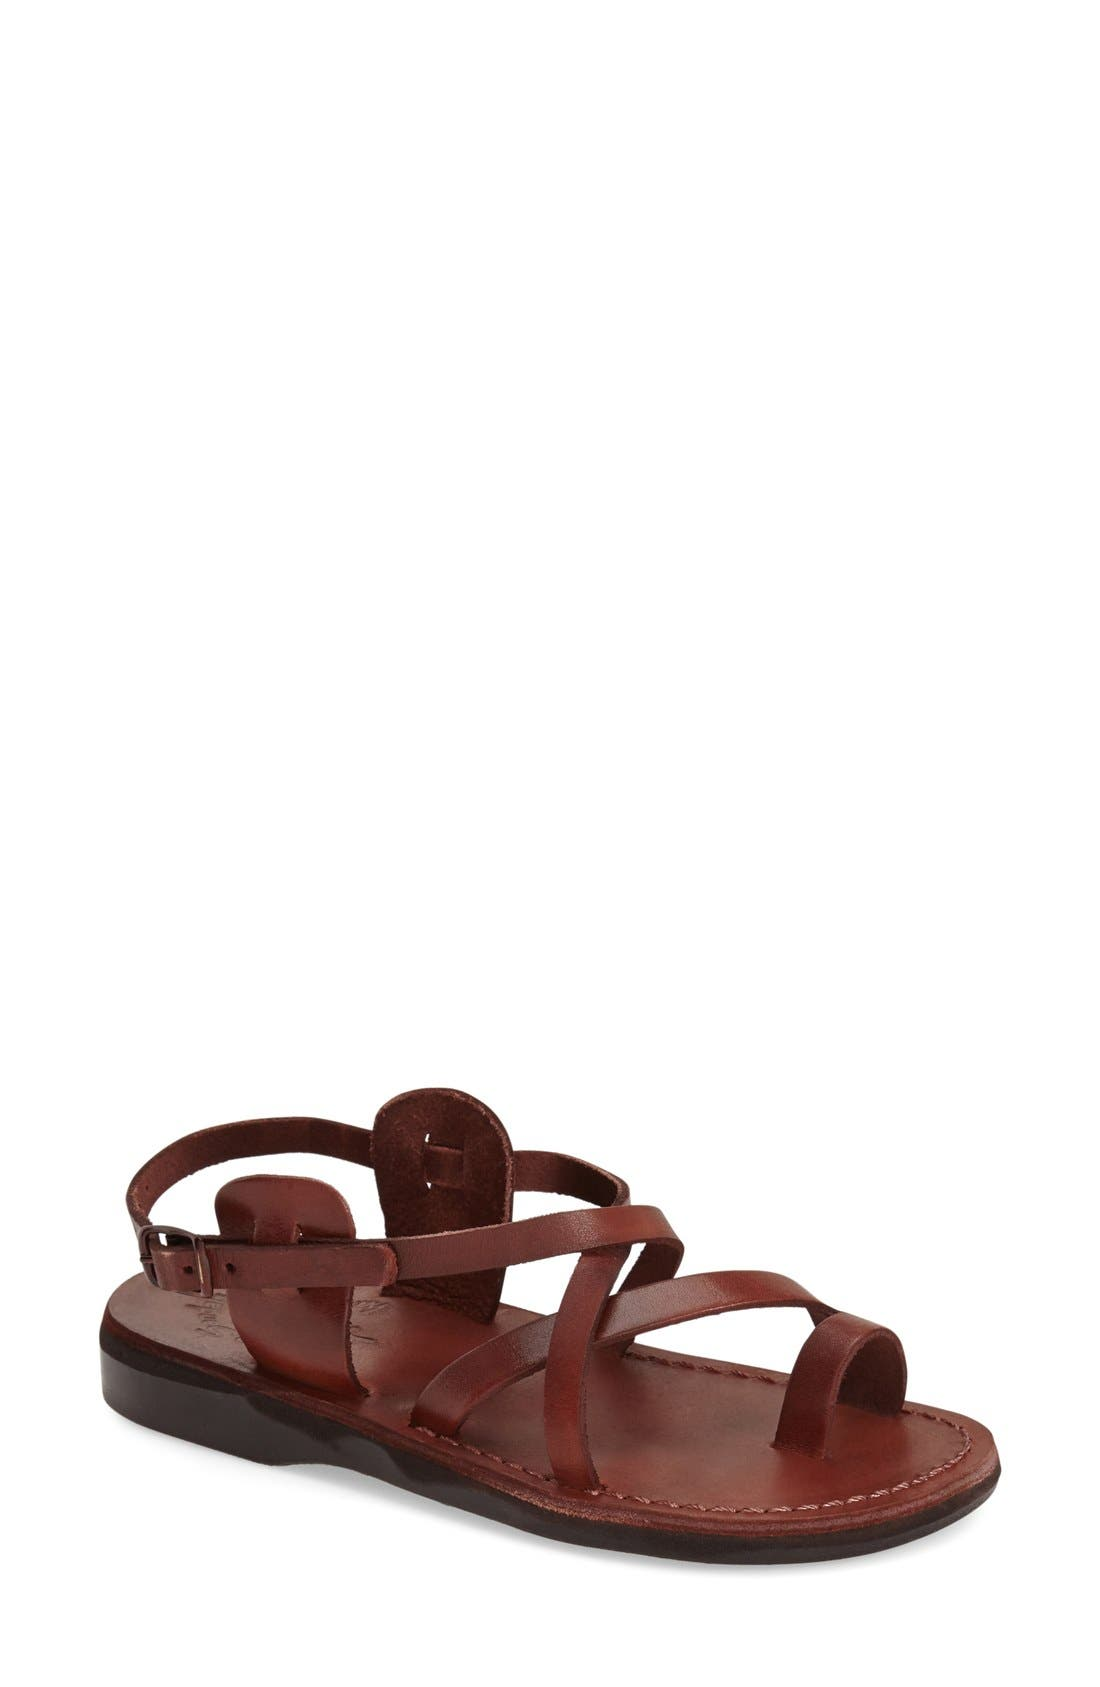 'The Good Shepard' Strappy Sandal,                             Main thumbnail 1, color,                             200